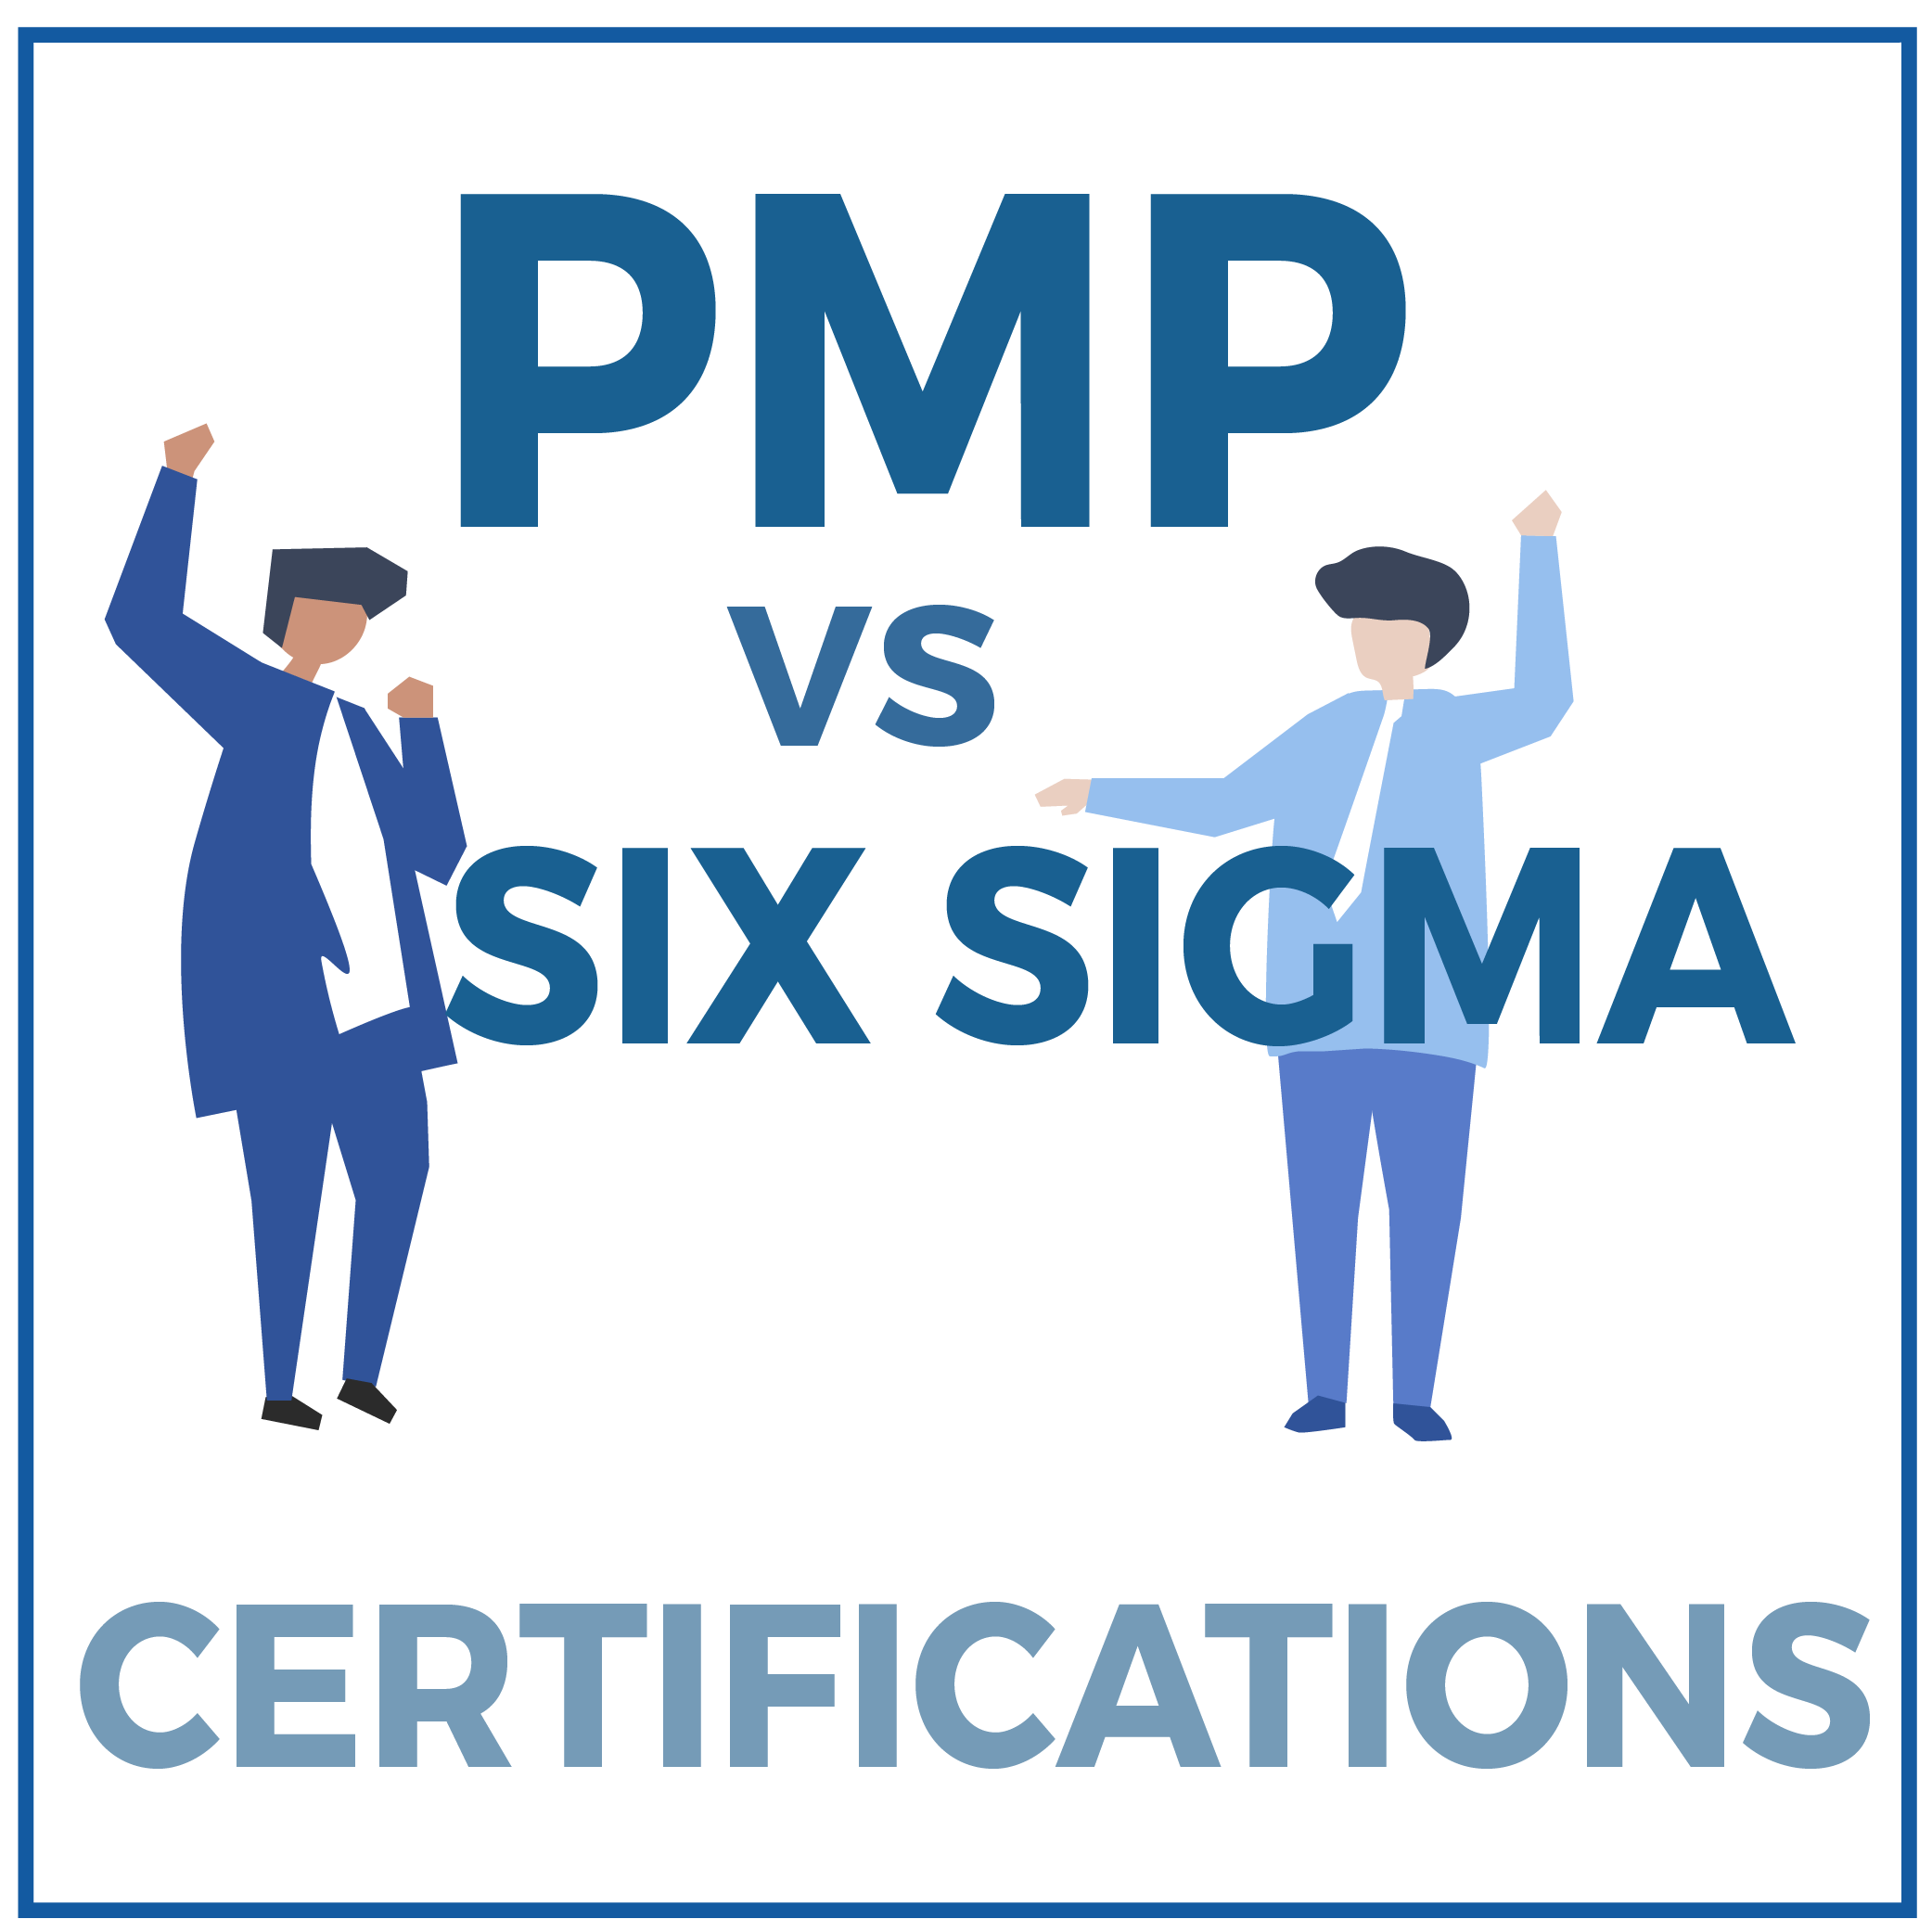 PMP vs Six Sigma Certifications